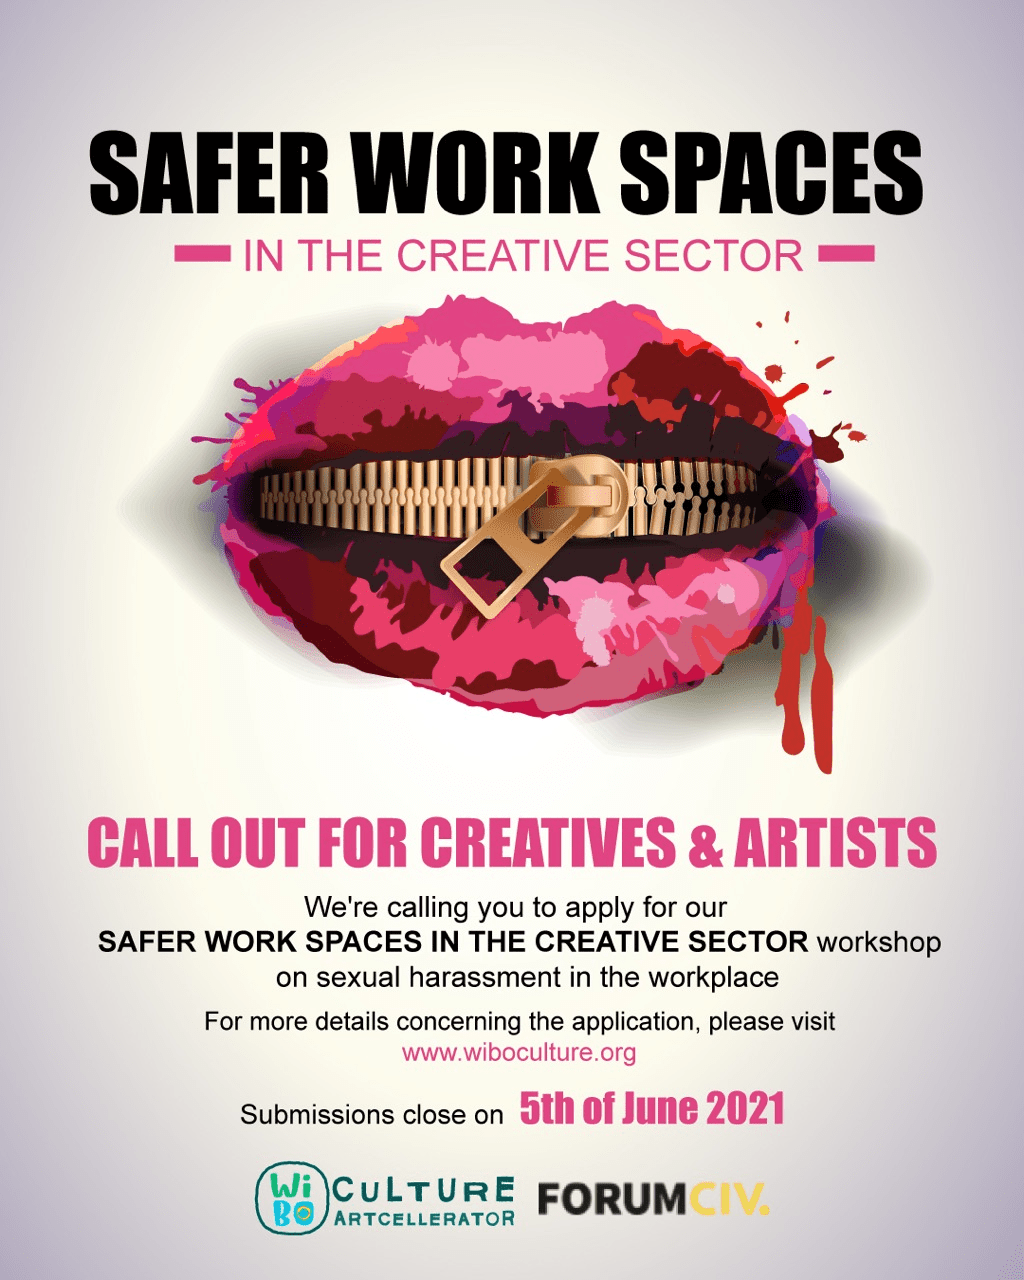 CALL OUT FOR CREATIVES AND ARTISTS